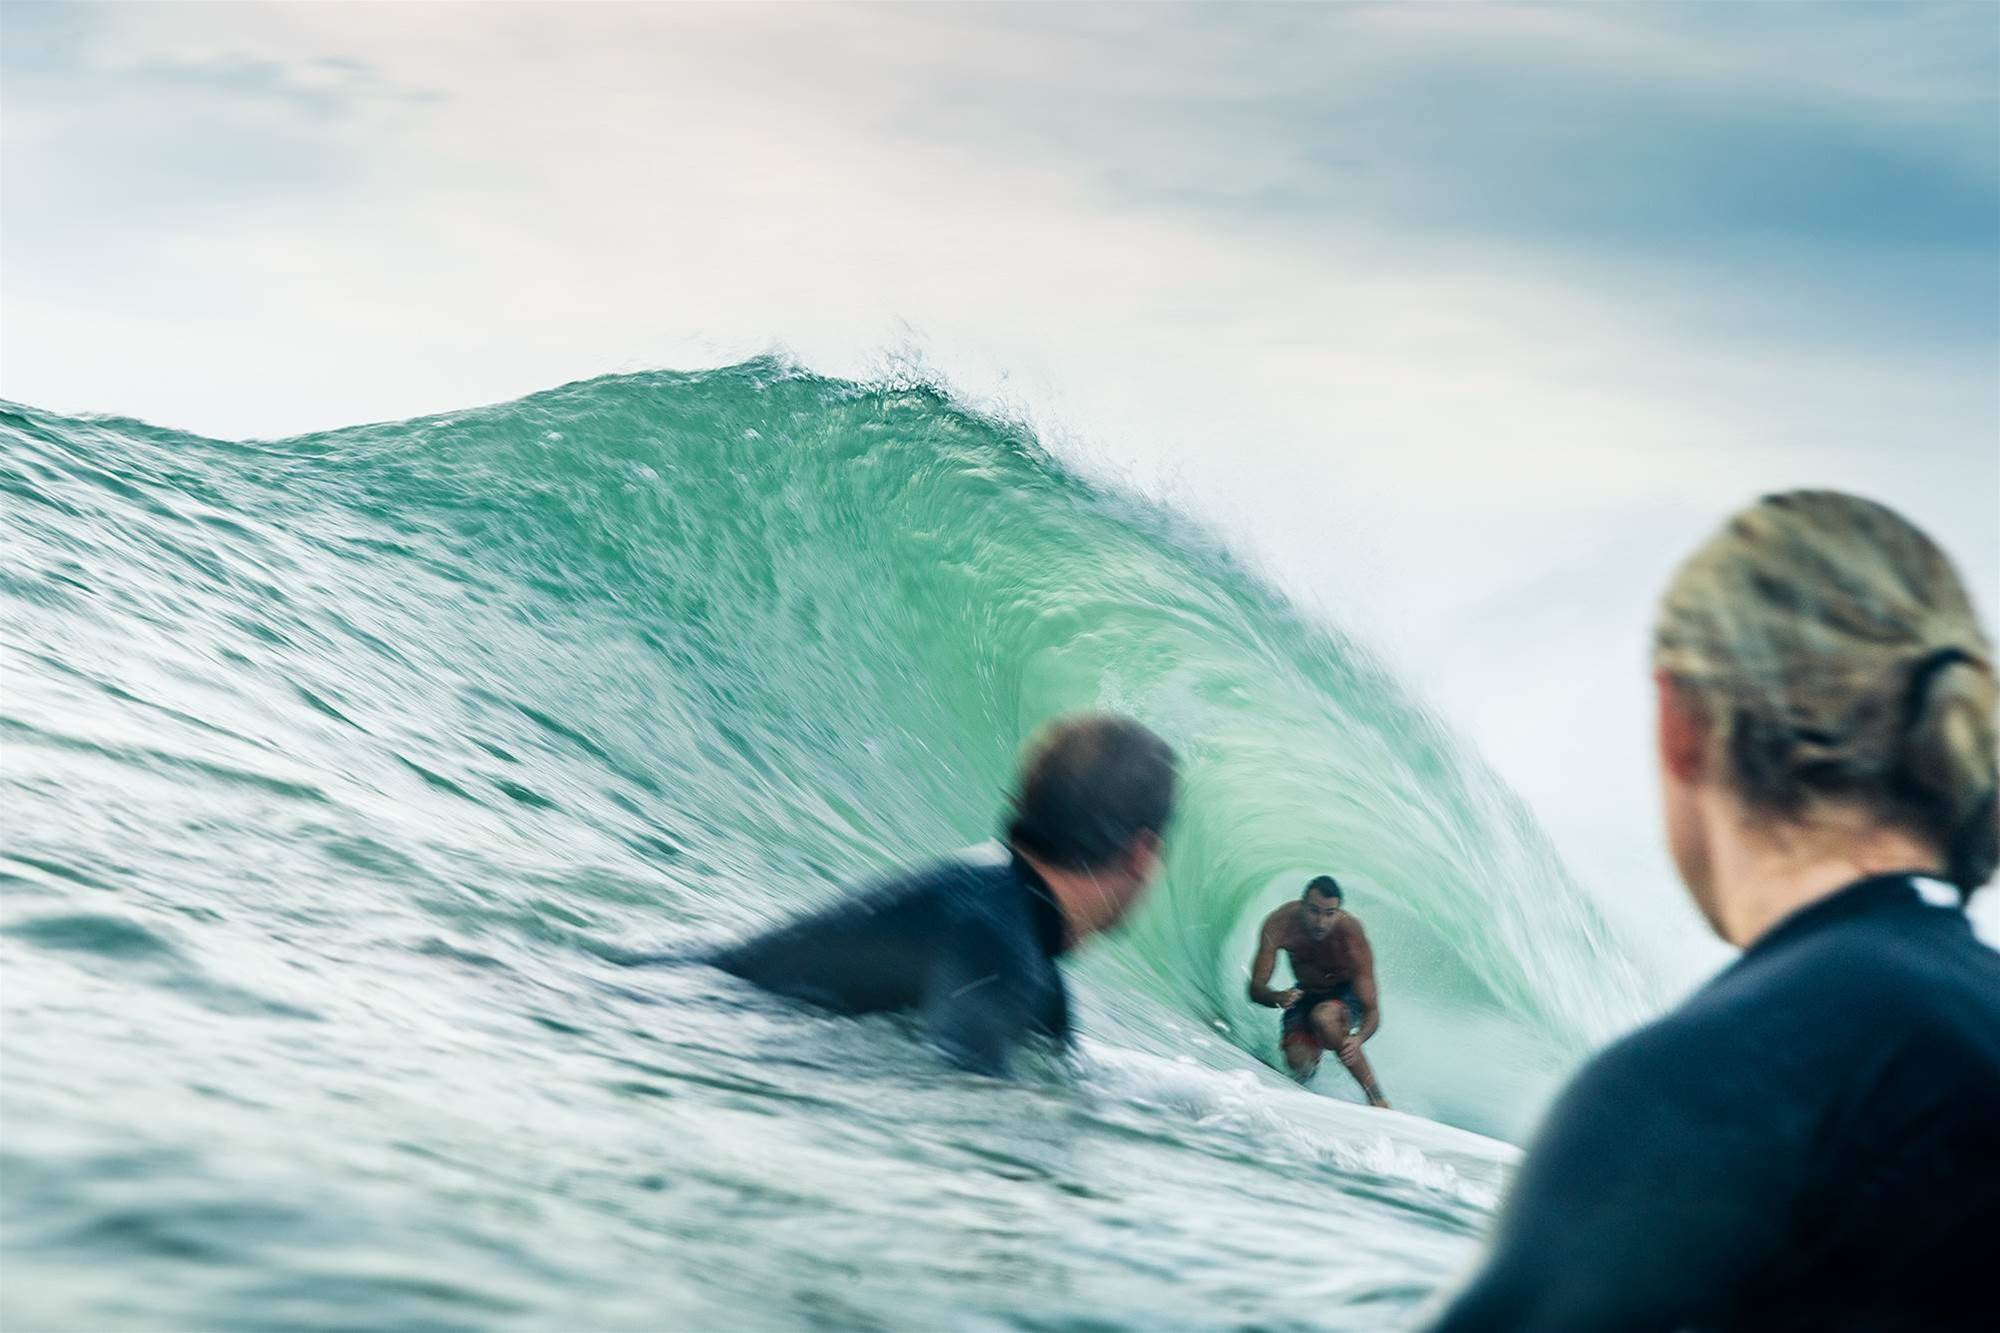 Quick Image: Joel Parko Scores Wave of the Morning.